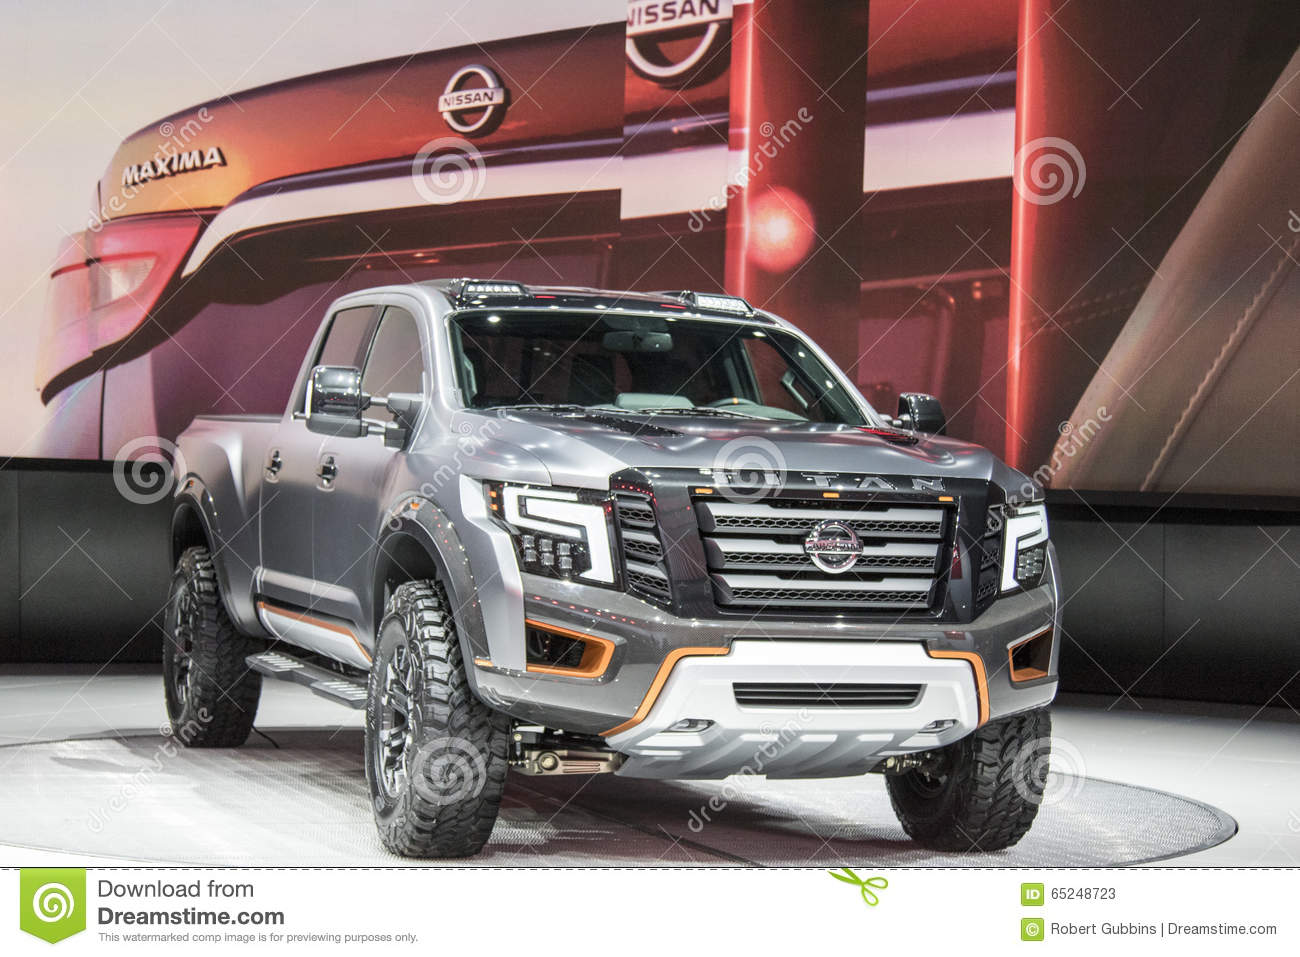 detroit january 17 the 2017 nissan titan pickup truck at the editorial stock photo image. Black Bedroom Furniture Sets. Home Design Ideas